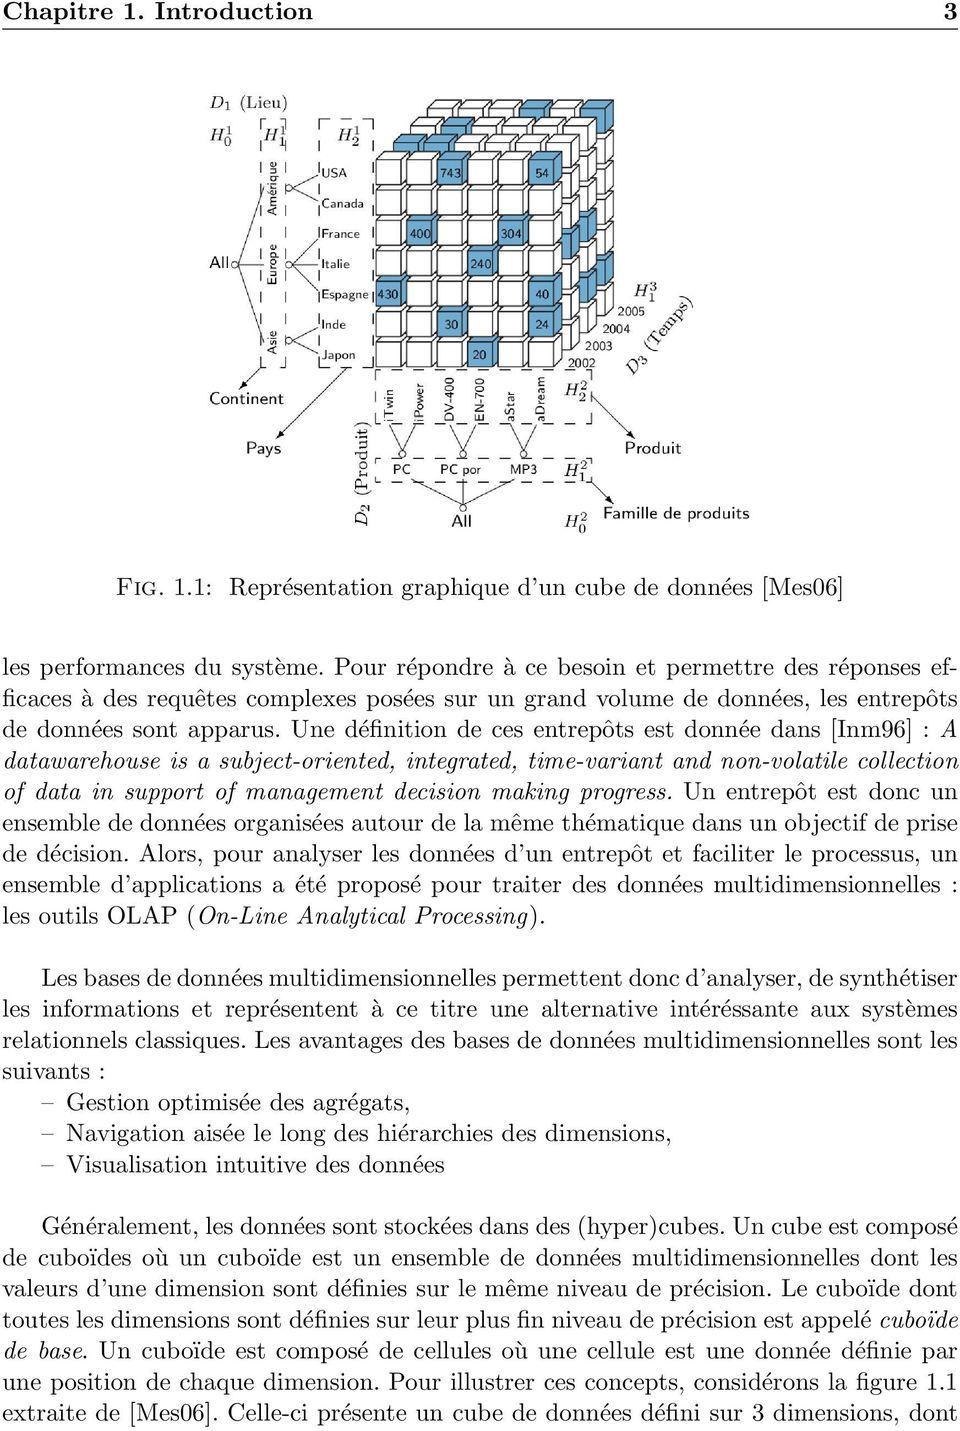 Une définition de ces entrepôts est donnée dans [Inm96] : A datawarehouse is a subject-oriented, integrated, time-variant and non-volatile collection of data in support of management decision making